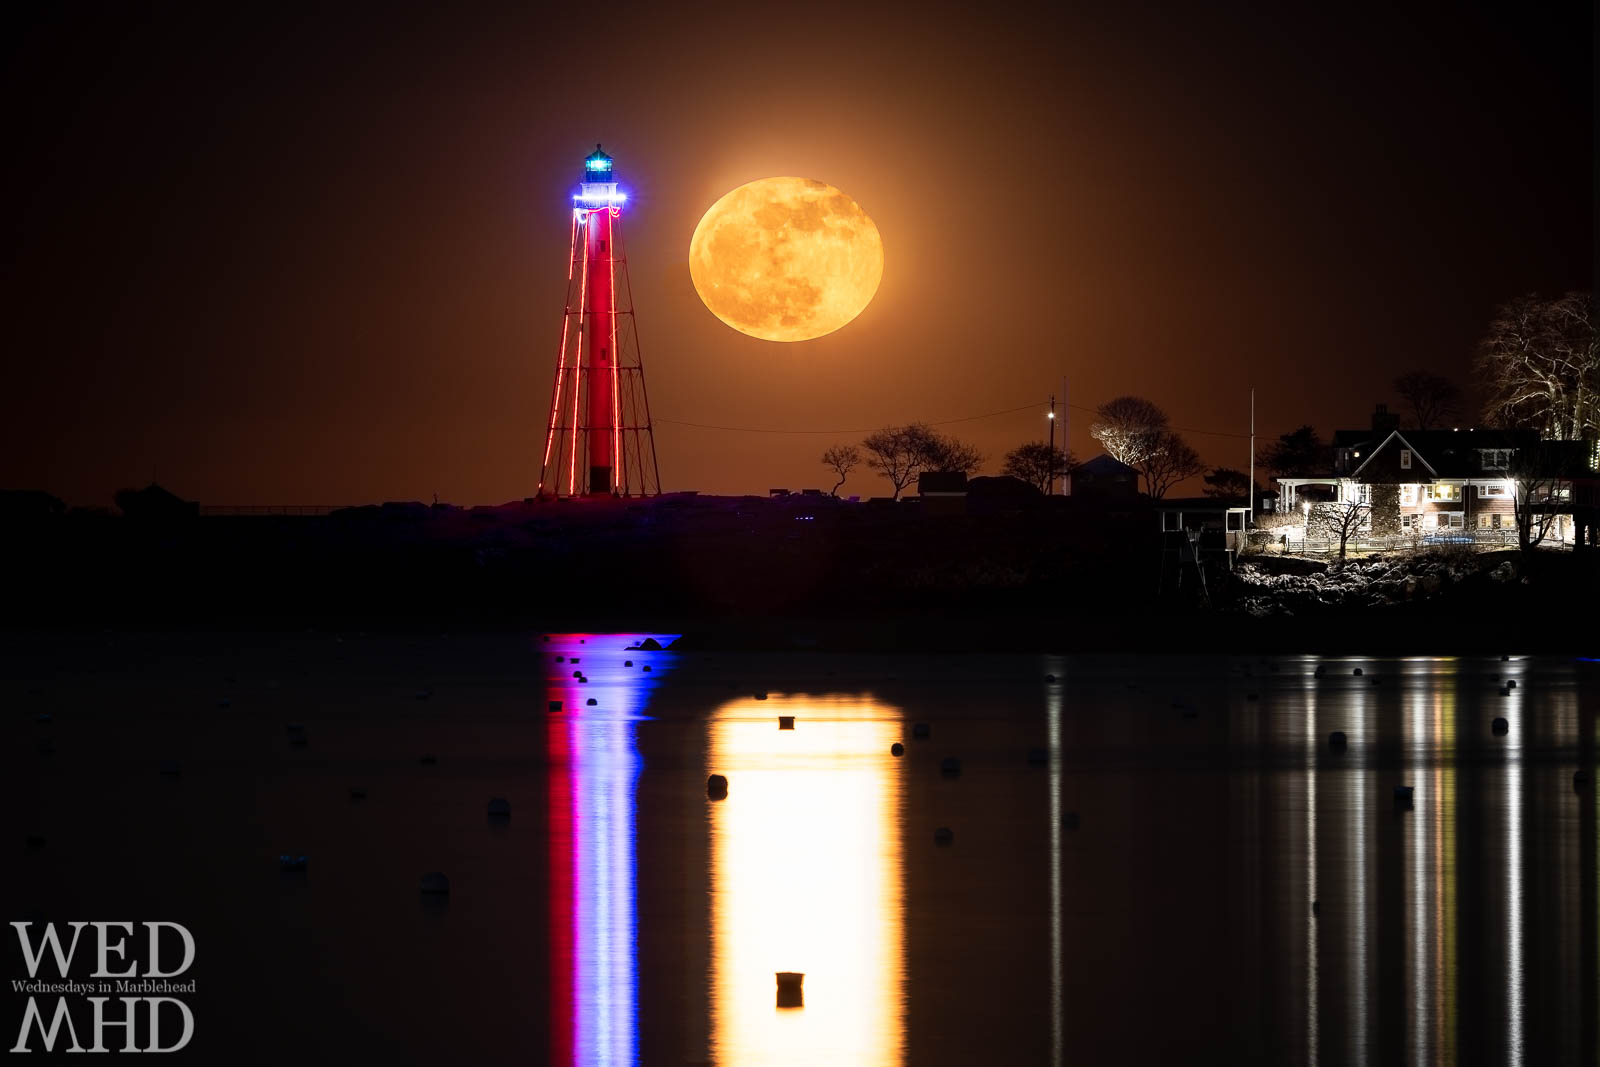 The full cold moon rises next to Marblehead Light creating a moonlit reflection in the still waters of Marblehead Harbor